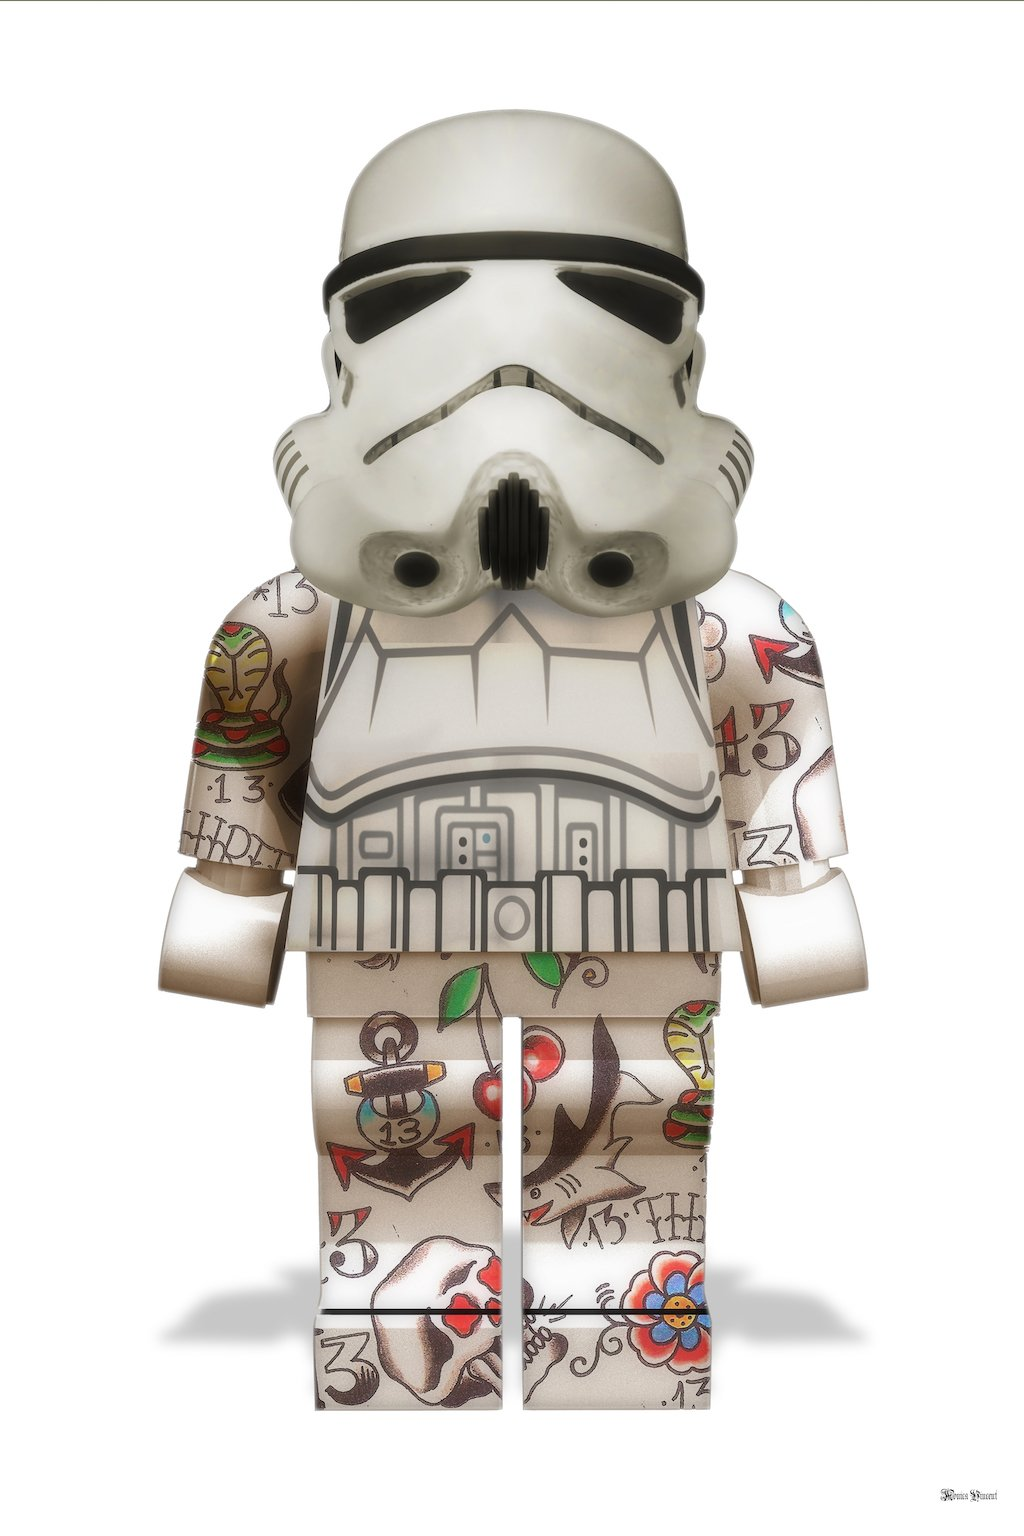 Lego Storm Trooper (White Background) - Small - Framed by Monica Vincent